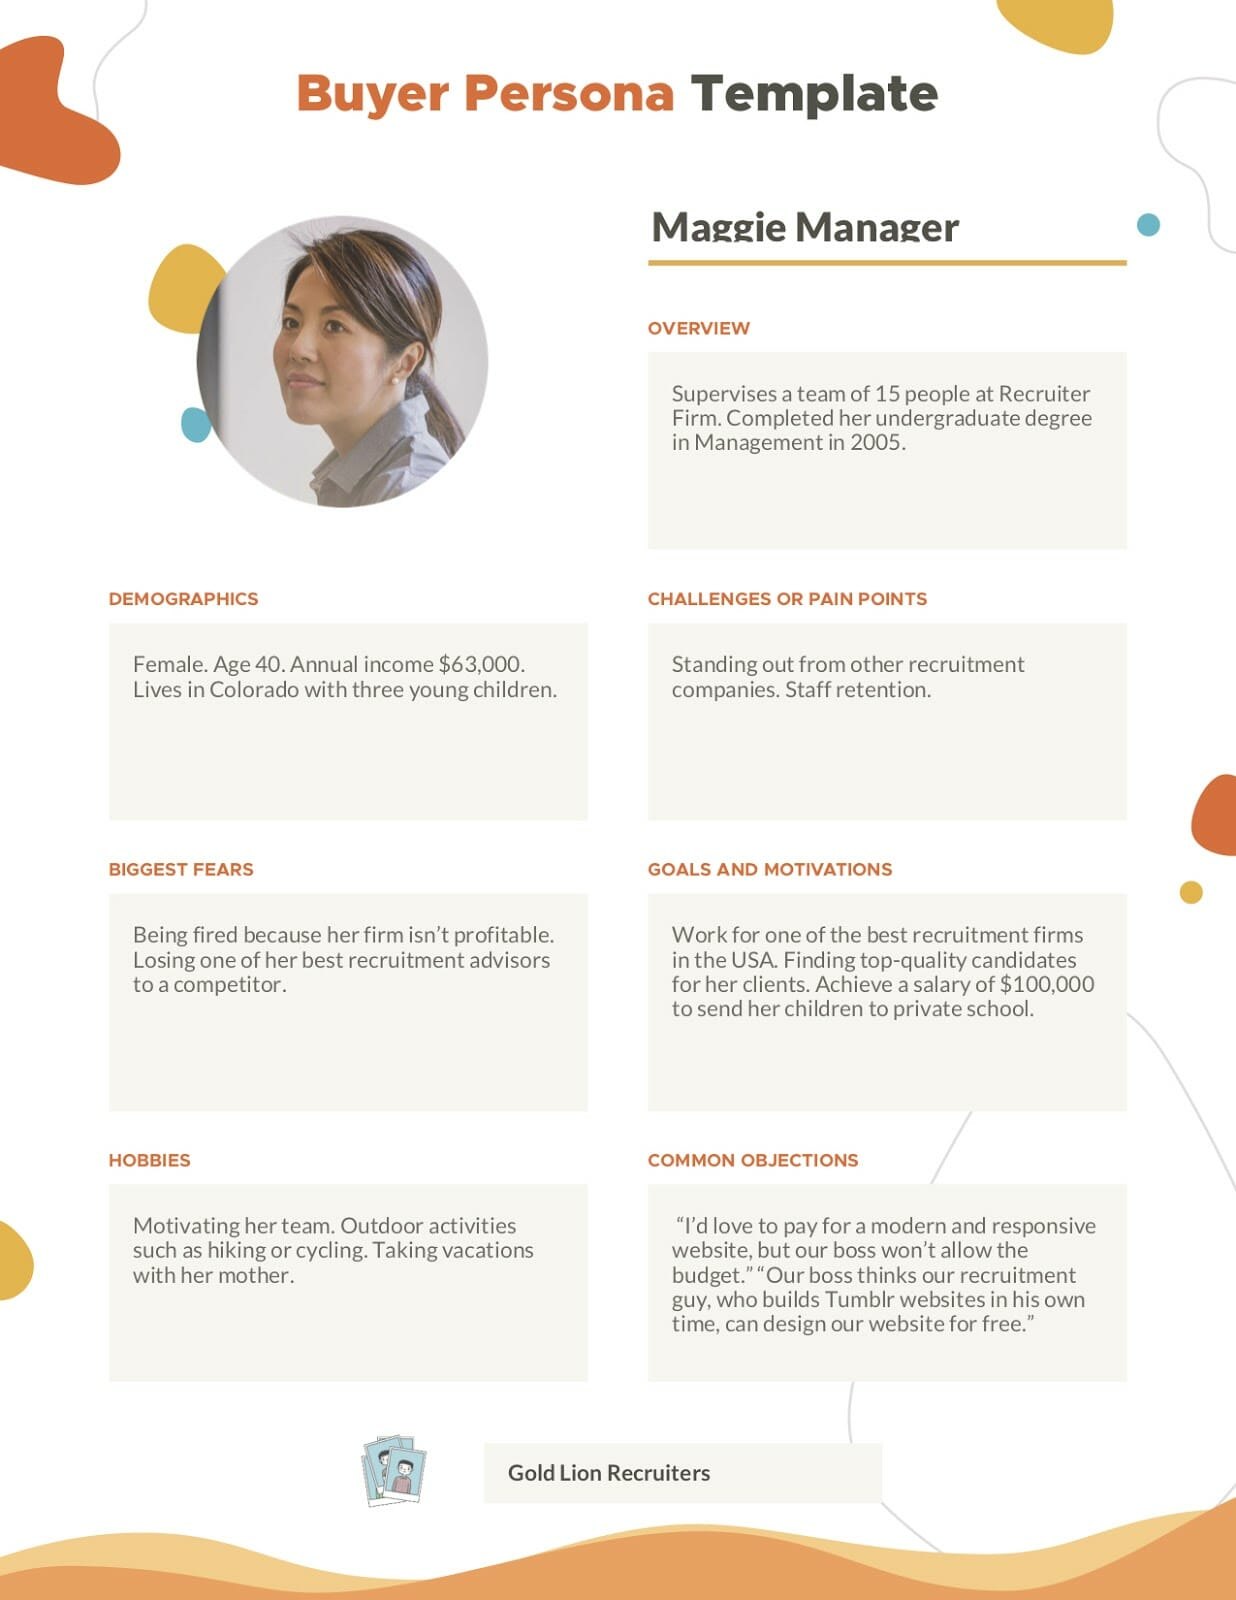 Buyer Persona Maggie Manager 1